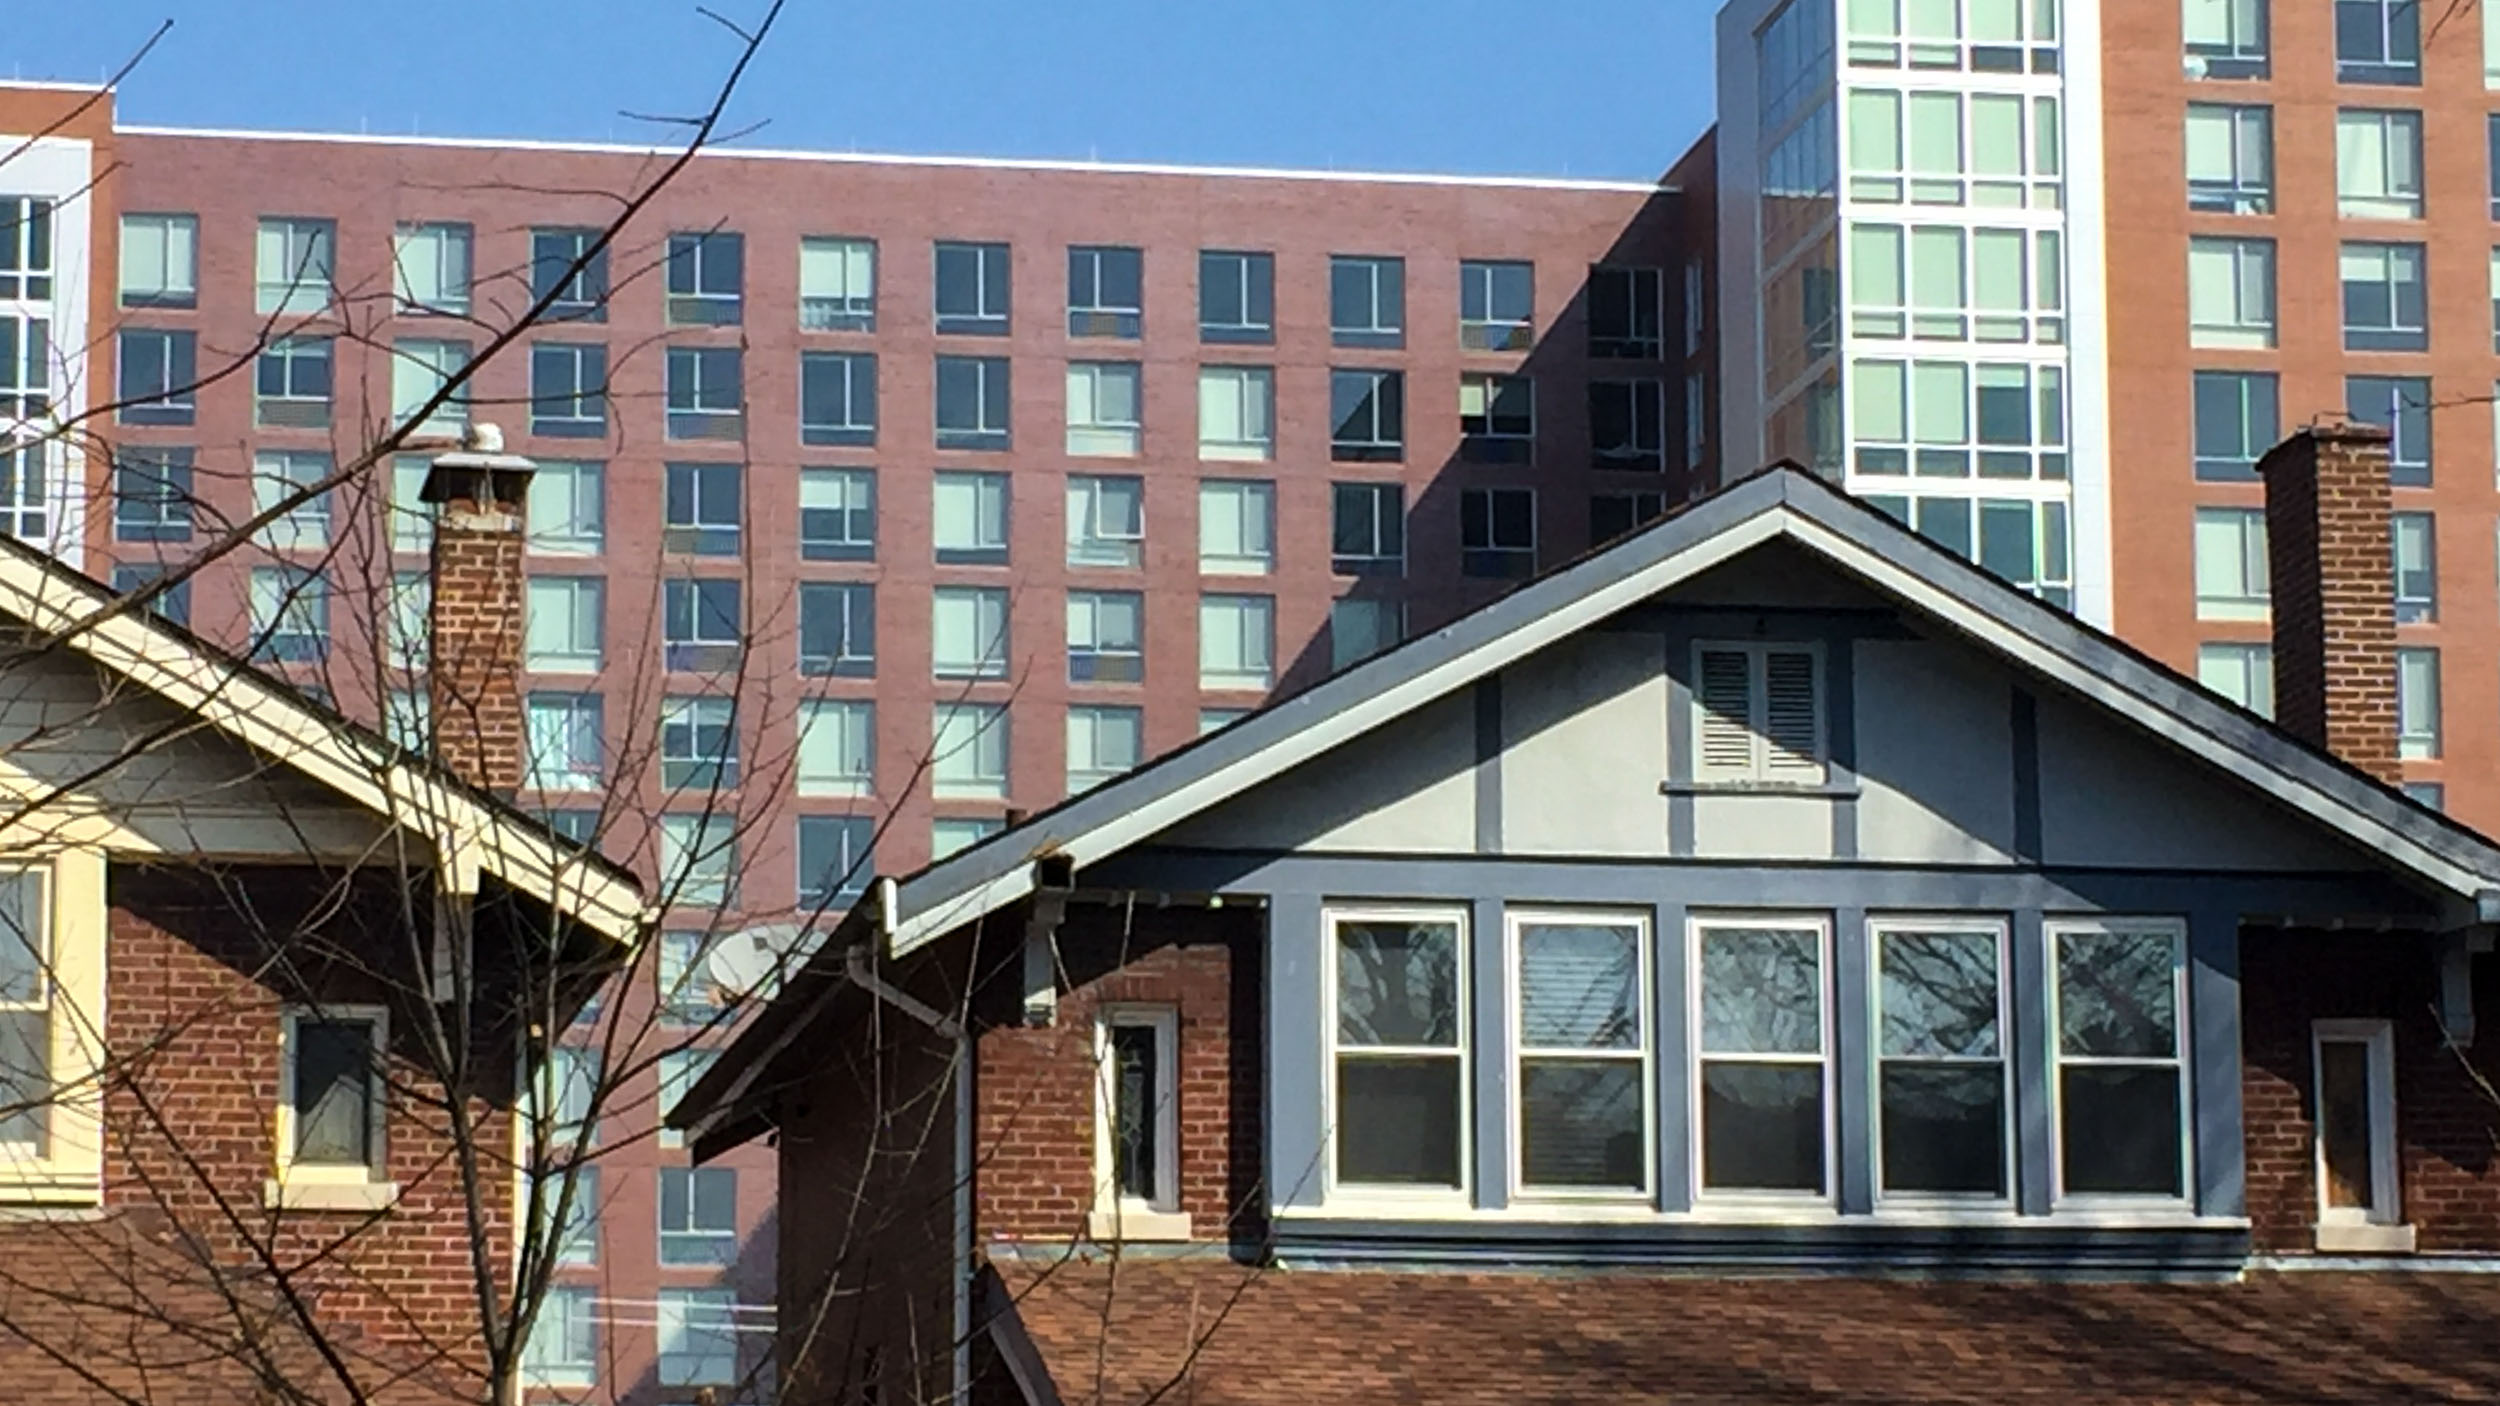 Expiring Abatements Mean More Revenue for St. Louis and Its Schools